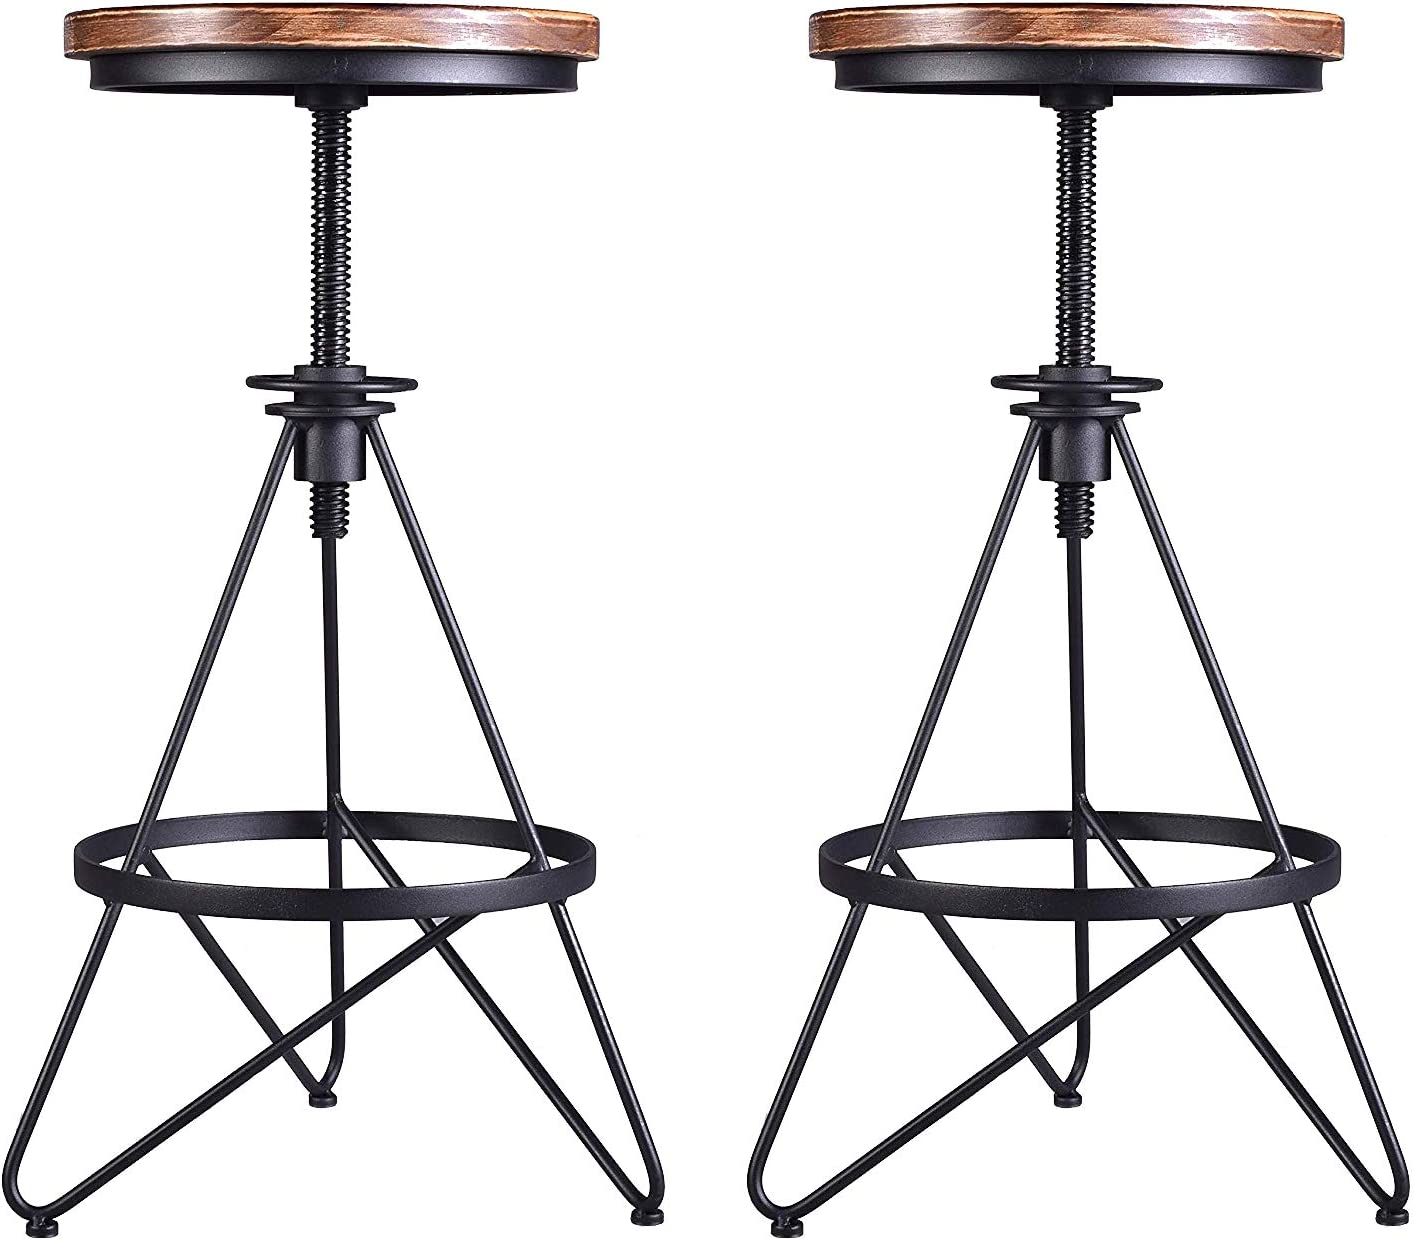 Lisuden Vintage Industrial Bar Stool Metal Frame Wood Top Adjustable Height Swivel Home Kitchen Restaurant Metal Bar Chairs 24-30 Inch Set of 2 Stools